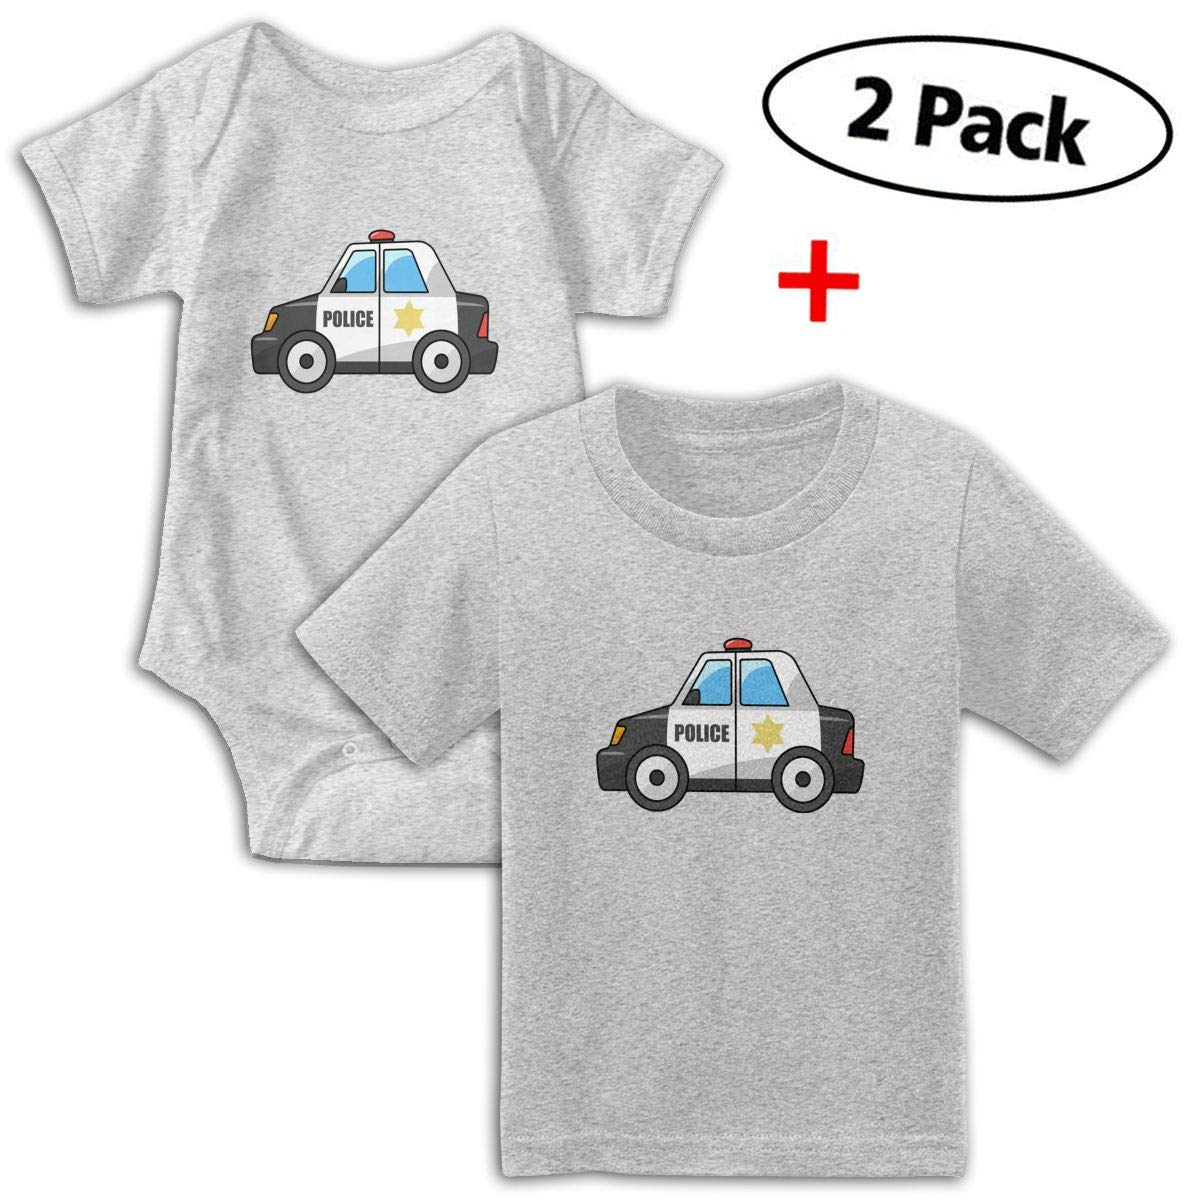 KAYERDELLE Police Car Babys Boys /& Girls Short Sleeve Romper Bodysuit Outfits and Tshirt